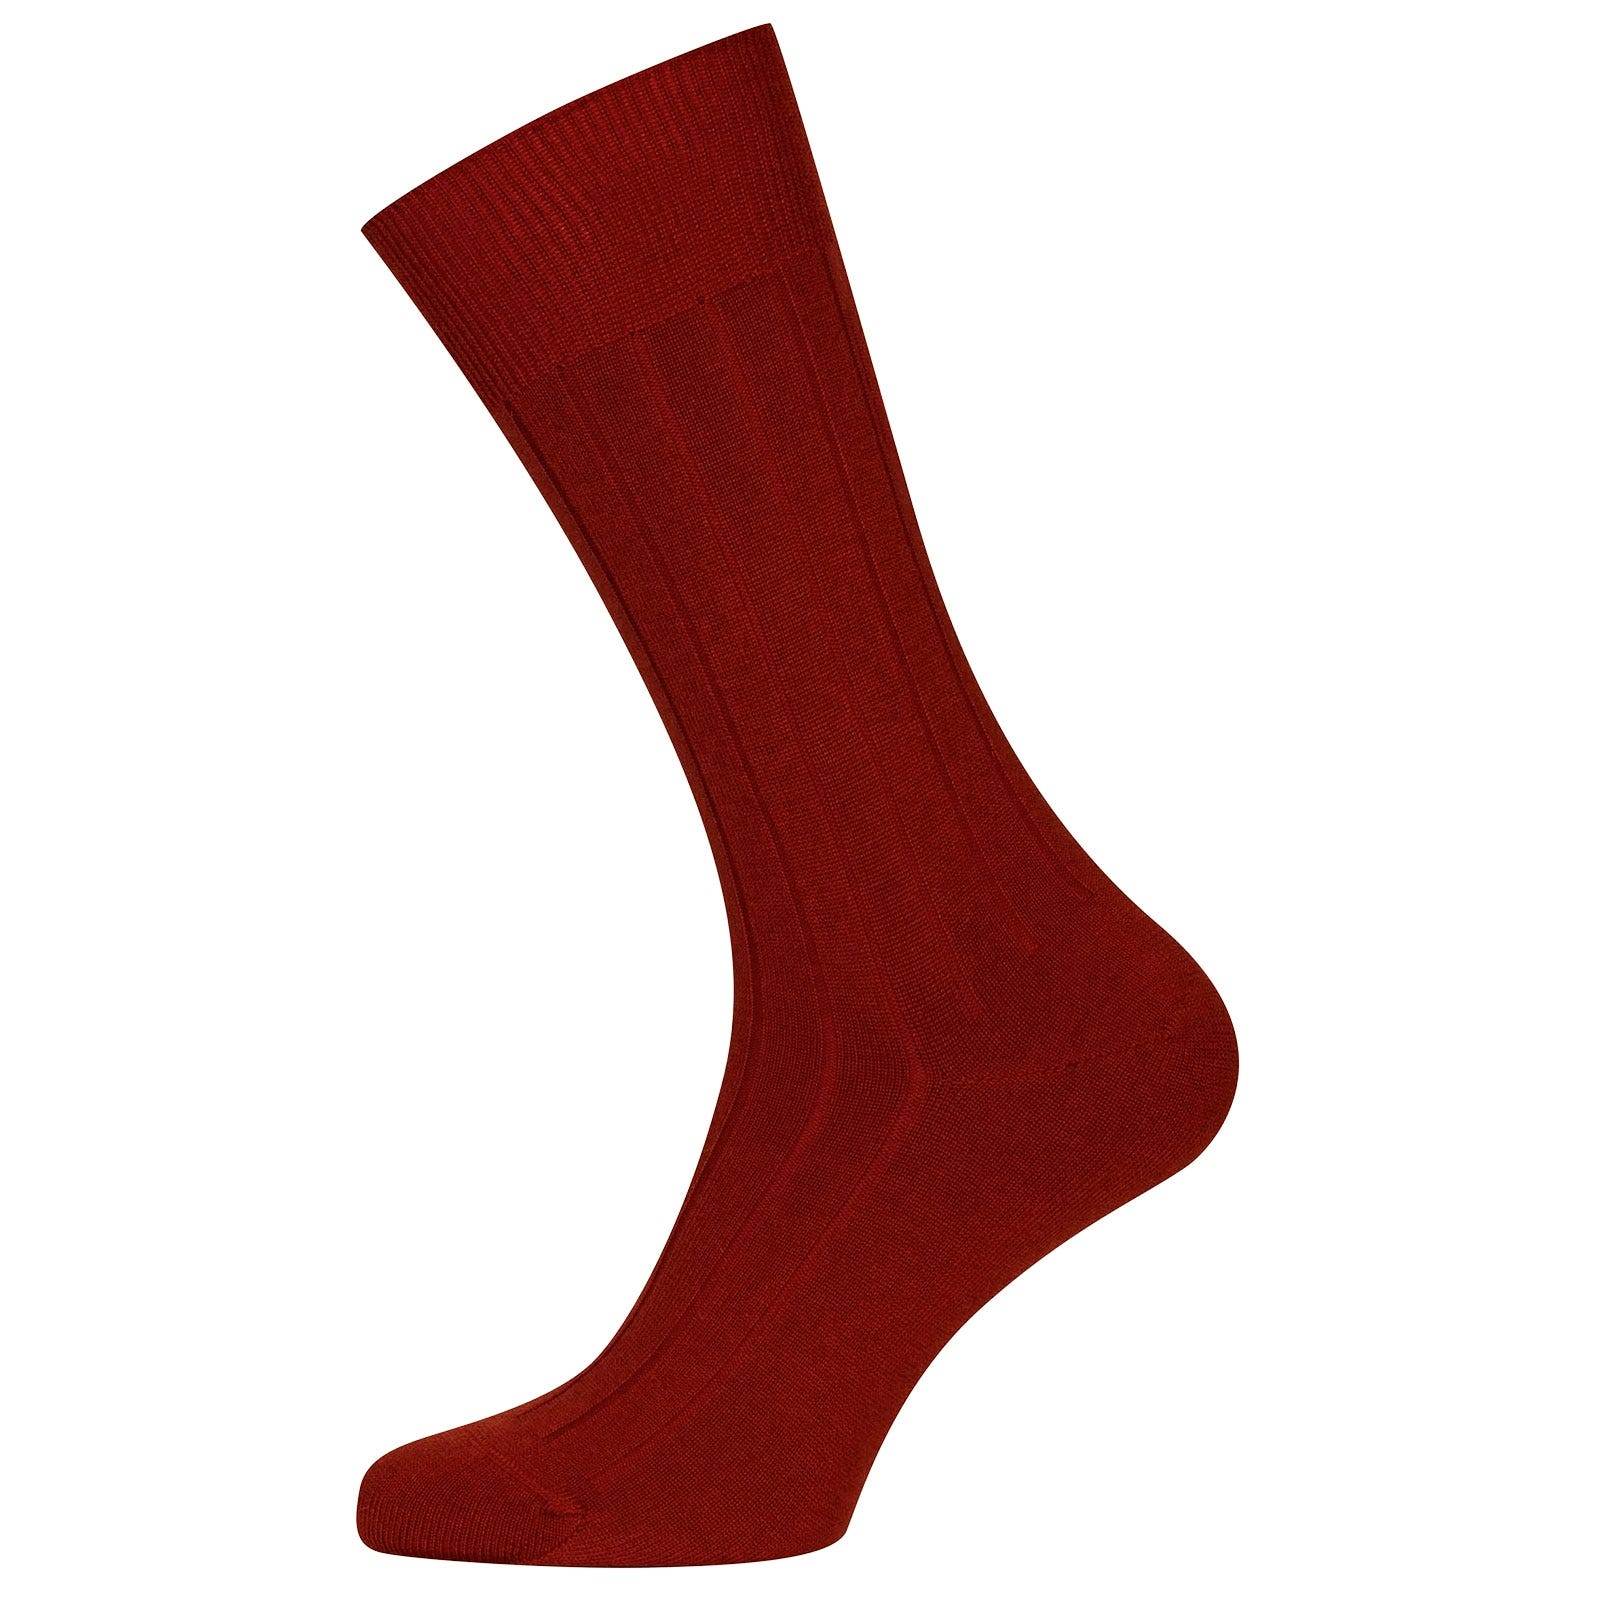 John Smedley Omega Sea Island Cotton Socks in Thermal Red-S/M